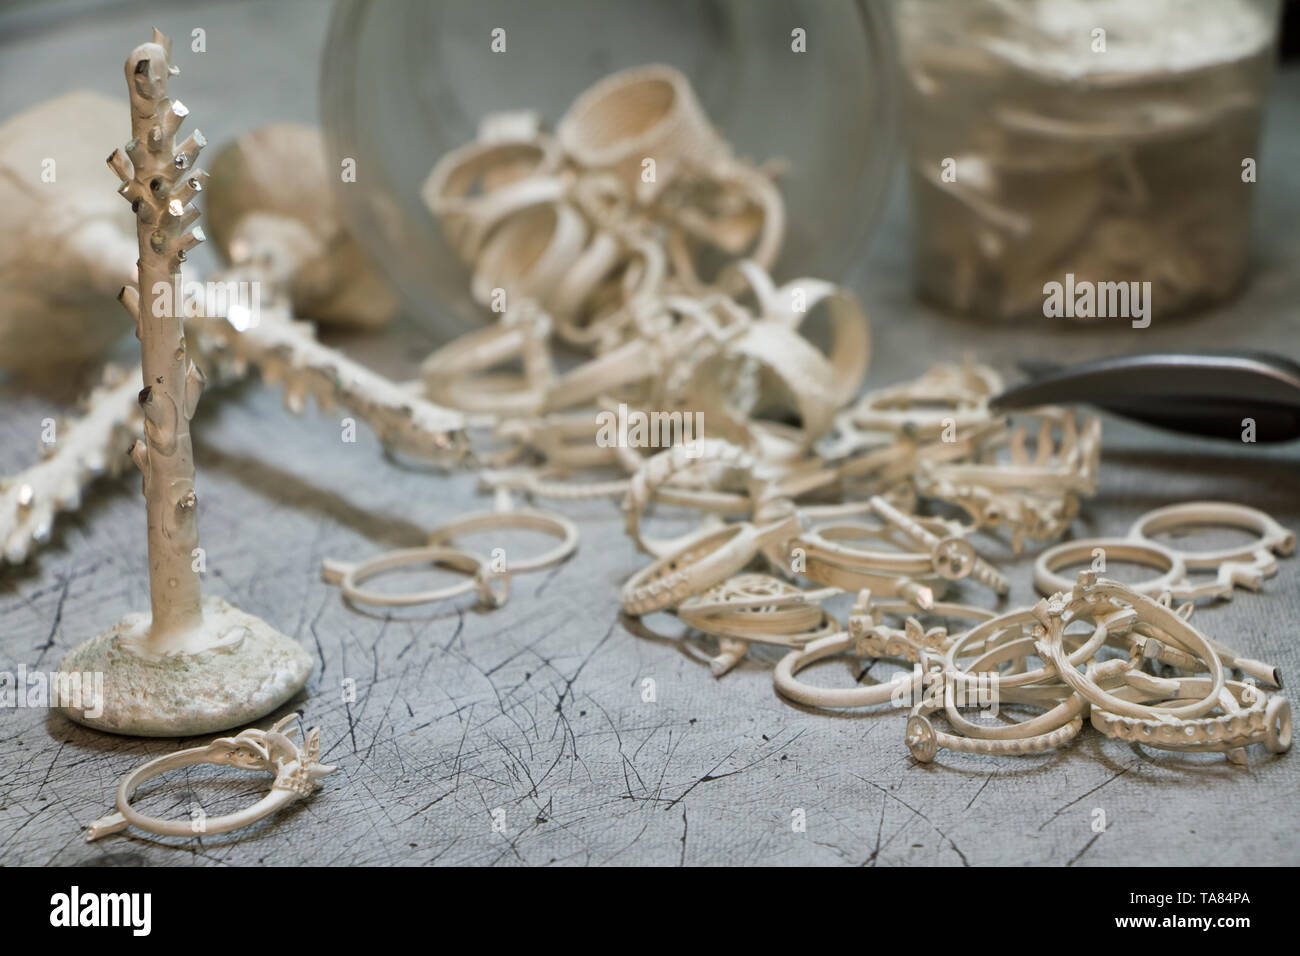 Preparation for smelting silver jewelry in a workshop for the manual production of jewelry, closeup - Stock Image